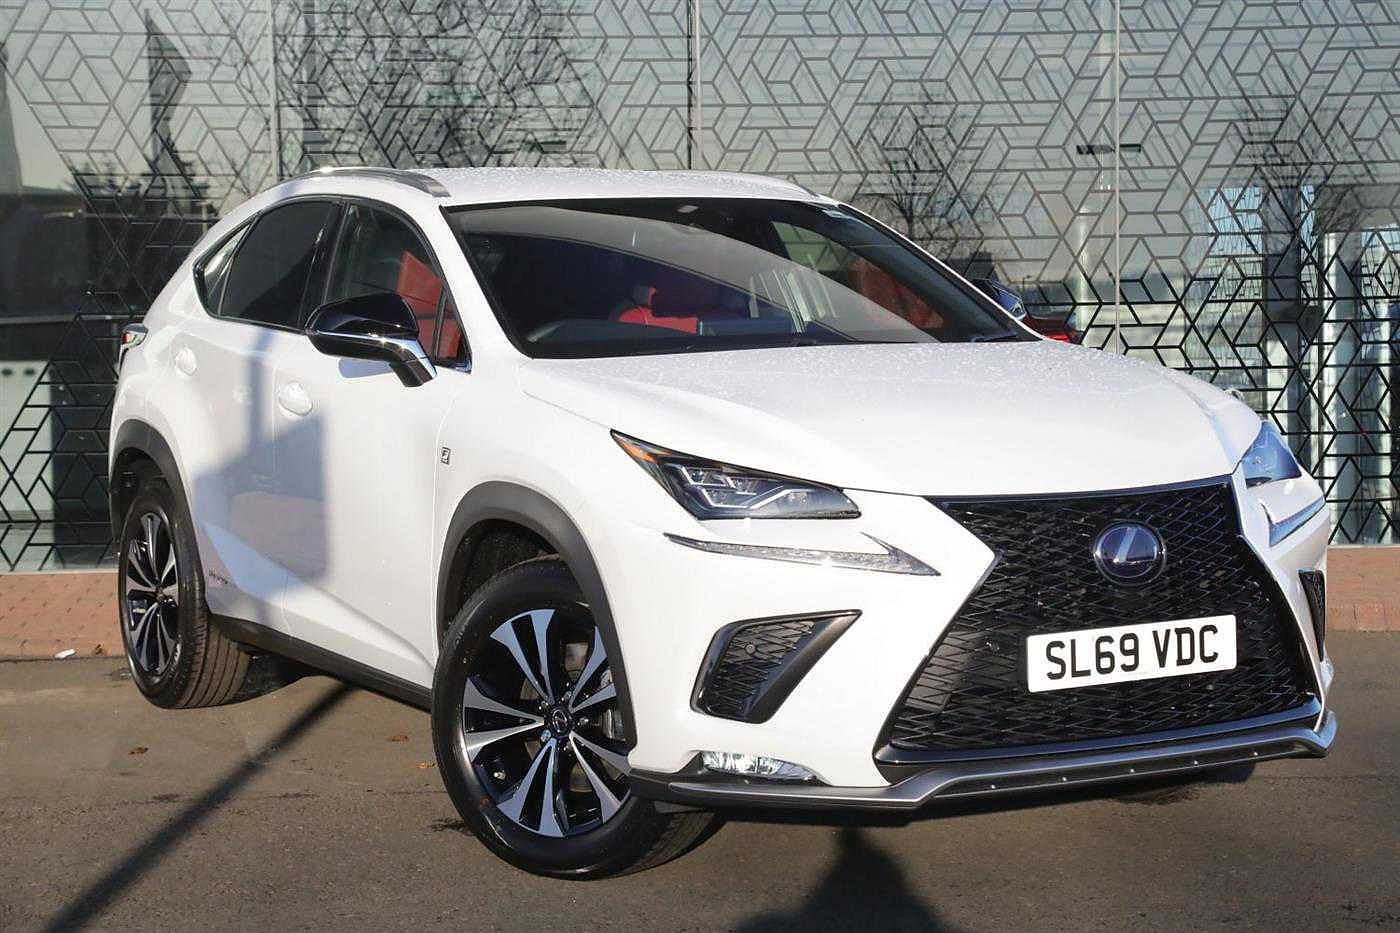 Used 2019 NX 300h F-Sport 5dr CVT [Premium Pack/leather]